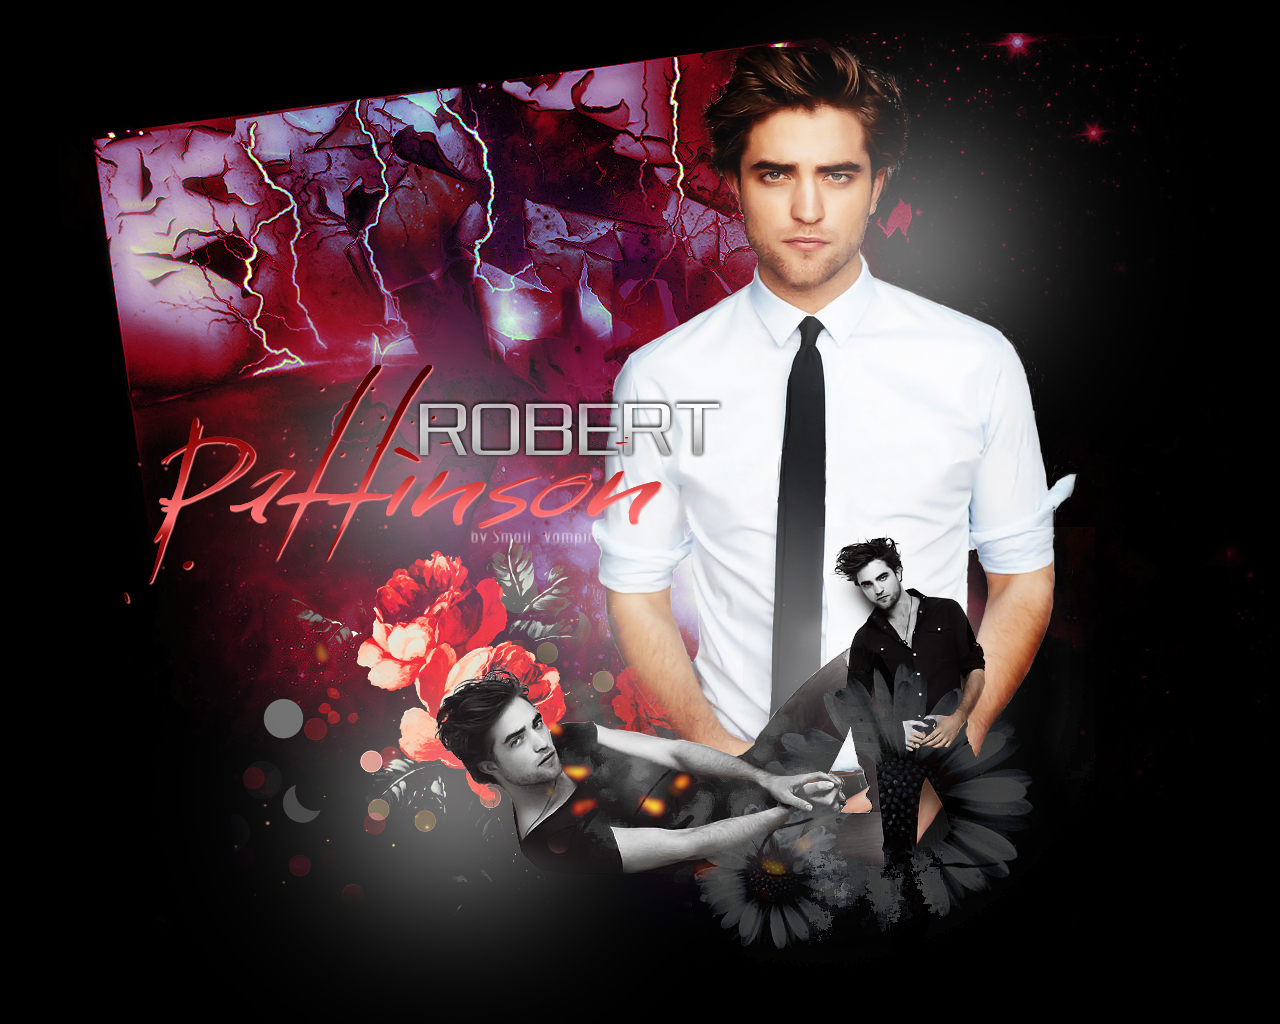 RobertPattinson! - Robert Pattinson